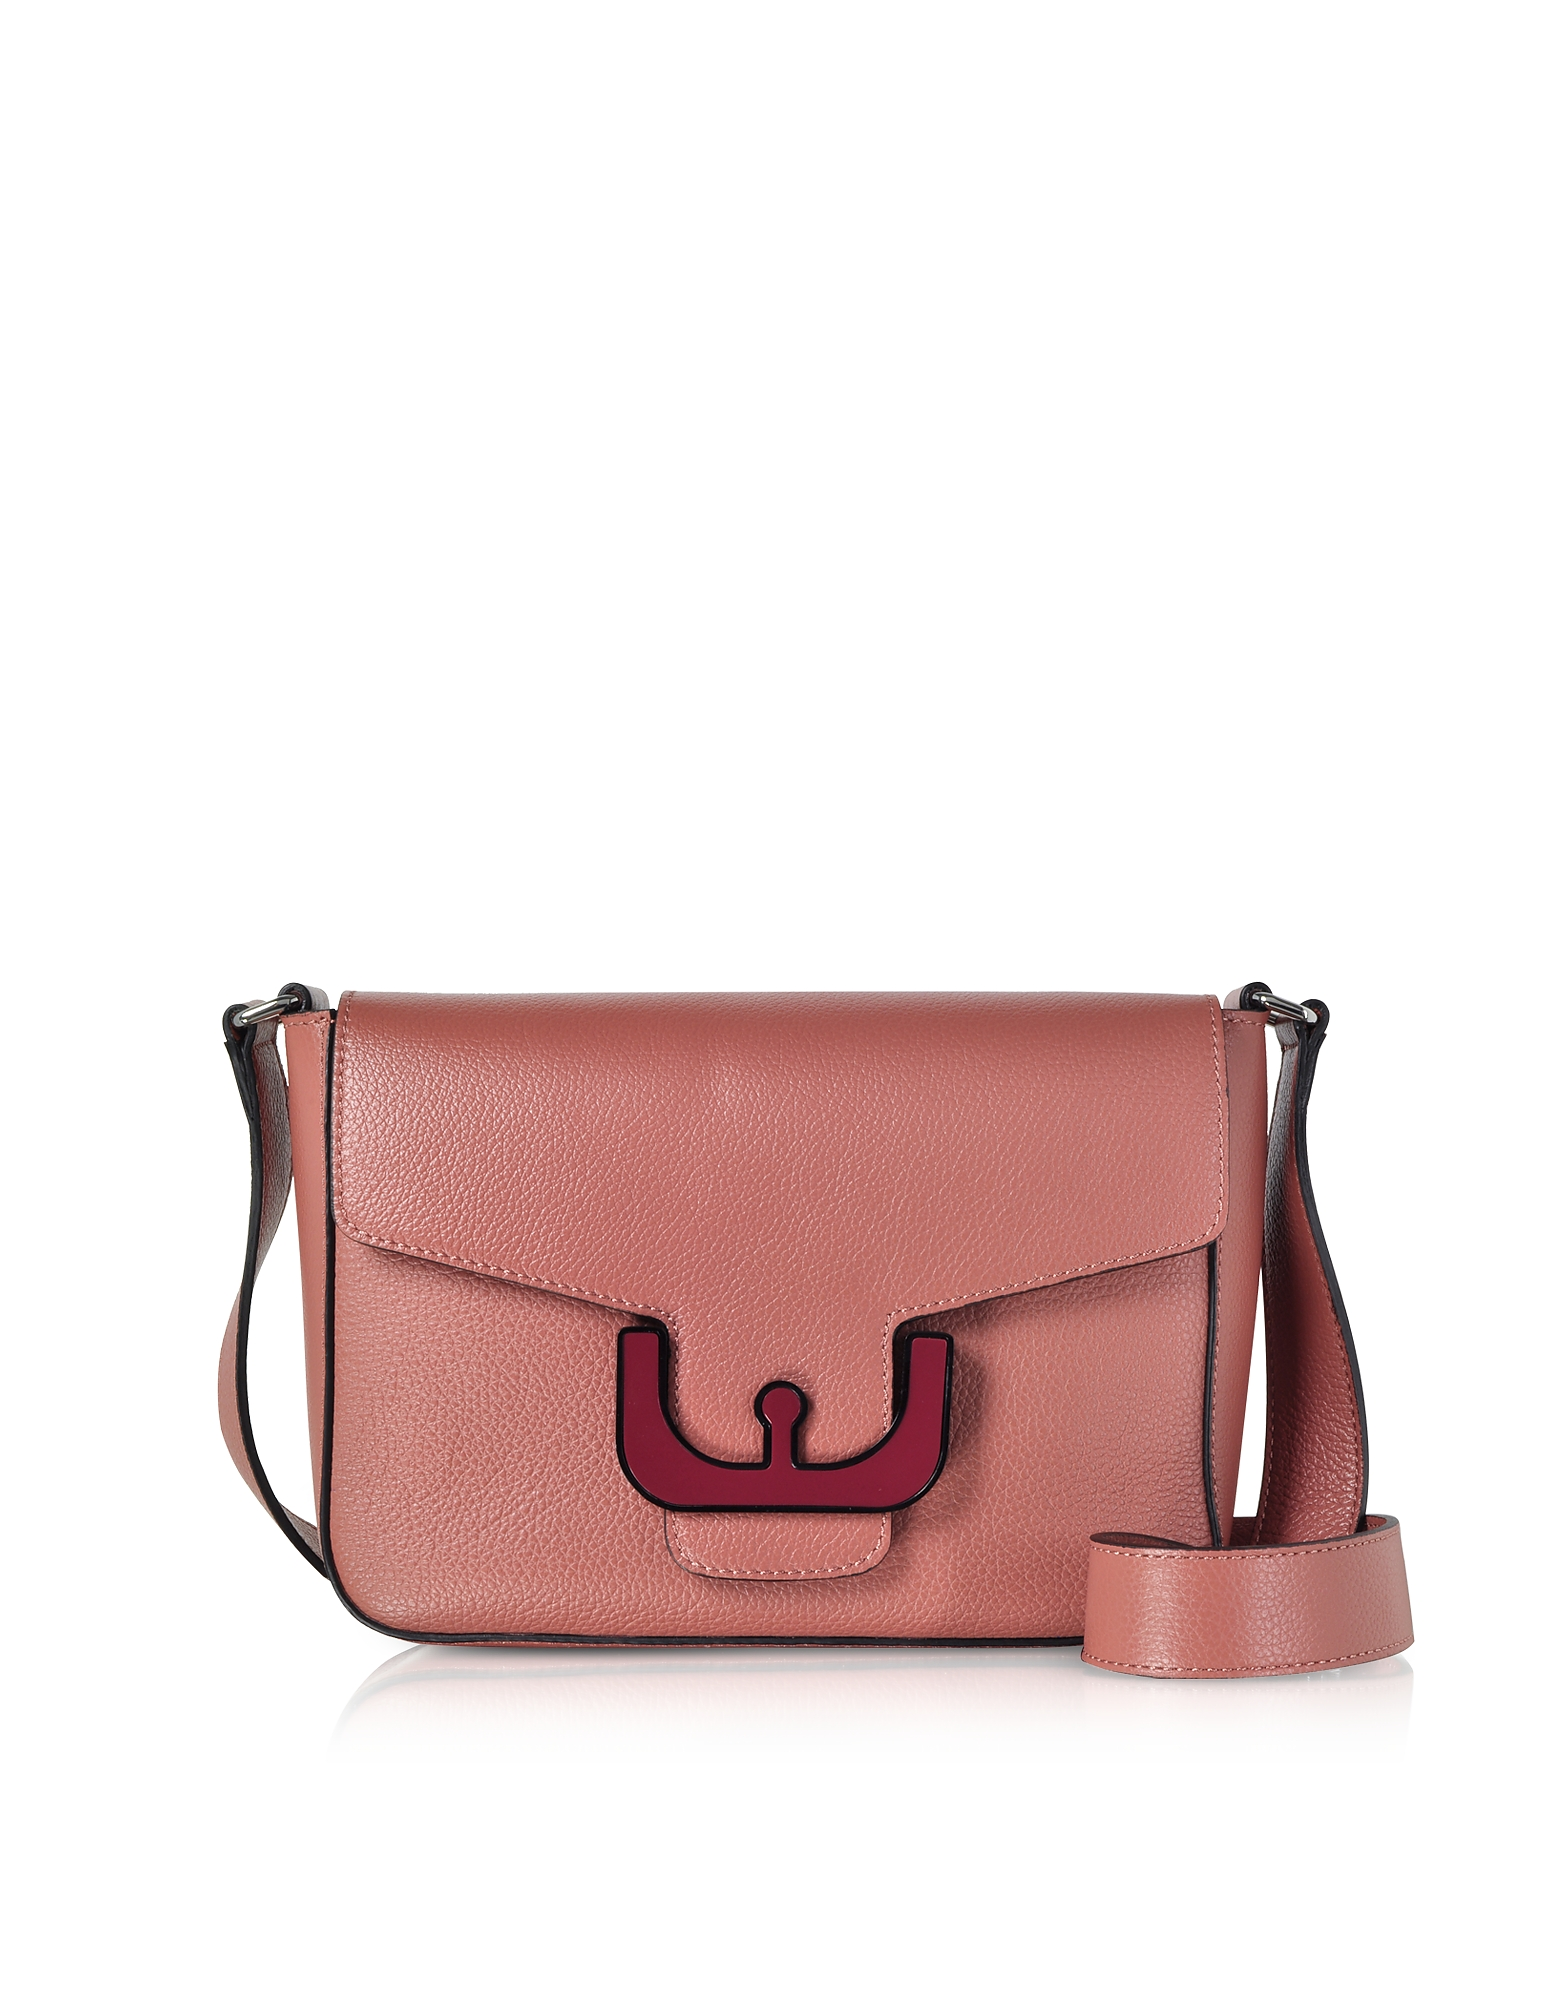 Coccinelle Handbags, Ambrine Leather Crossbody Bag